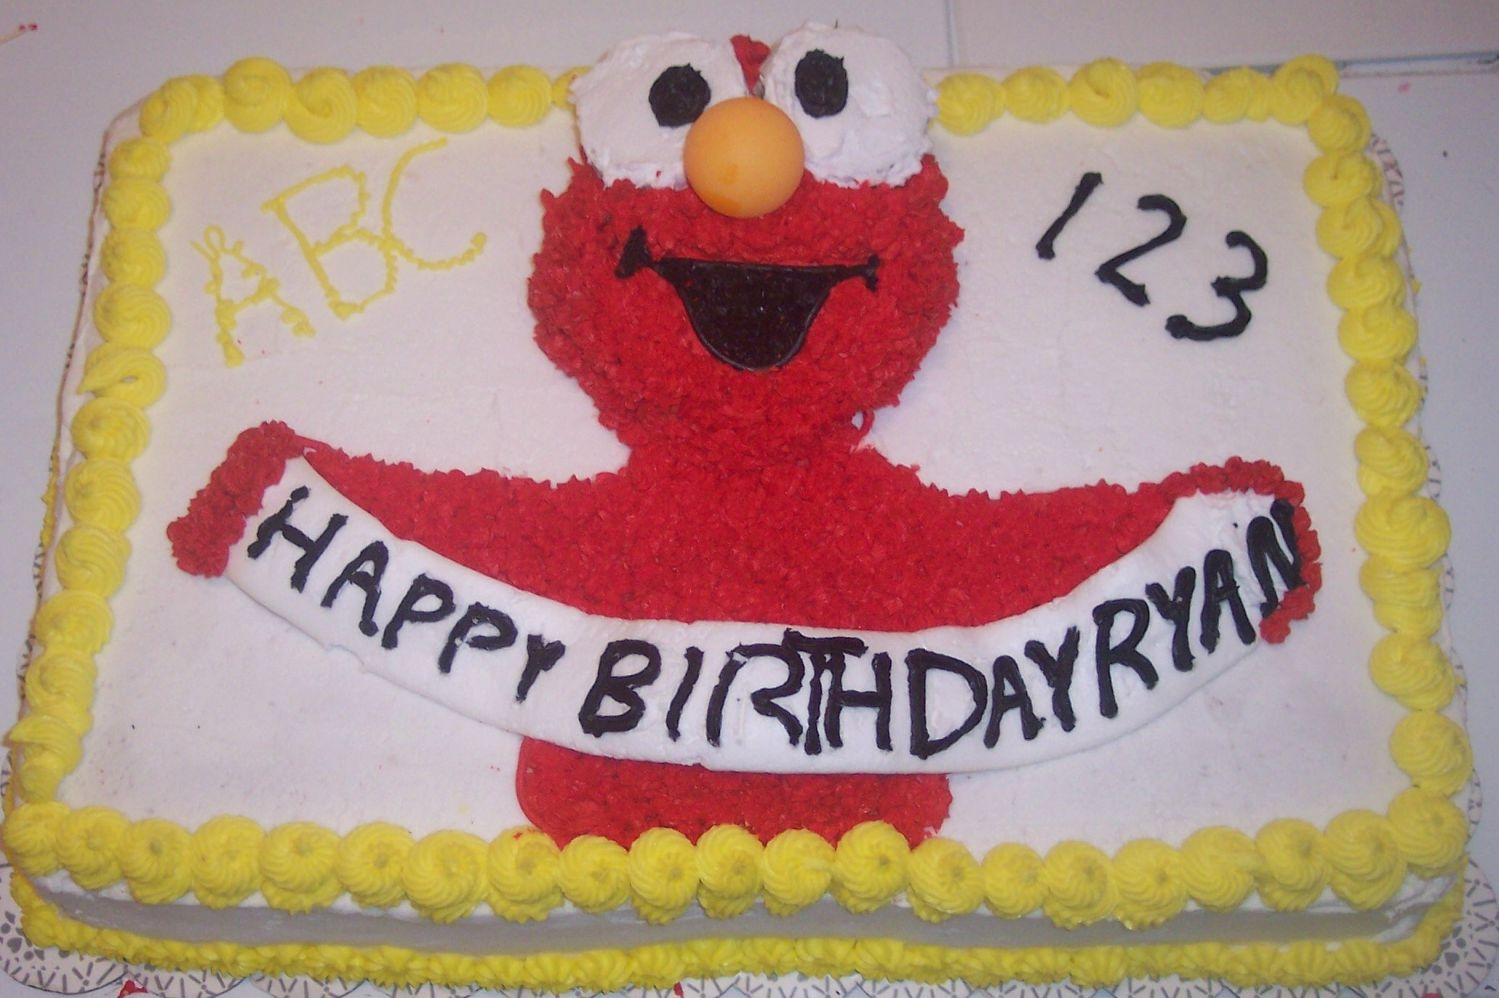 Elmo Birthday Cake This is an Elmo birthday cake done for my grandson Ryan's second birthday. It is a 2 layer cake, one layer golden, one chocolate. Just...